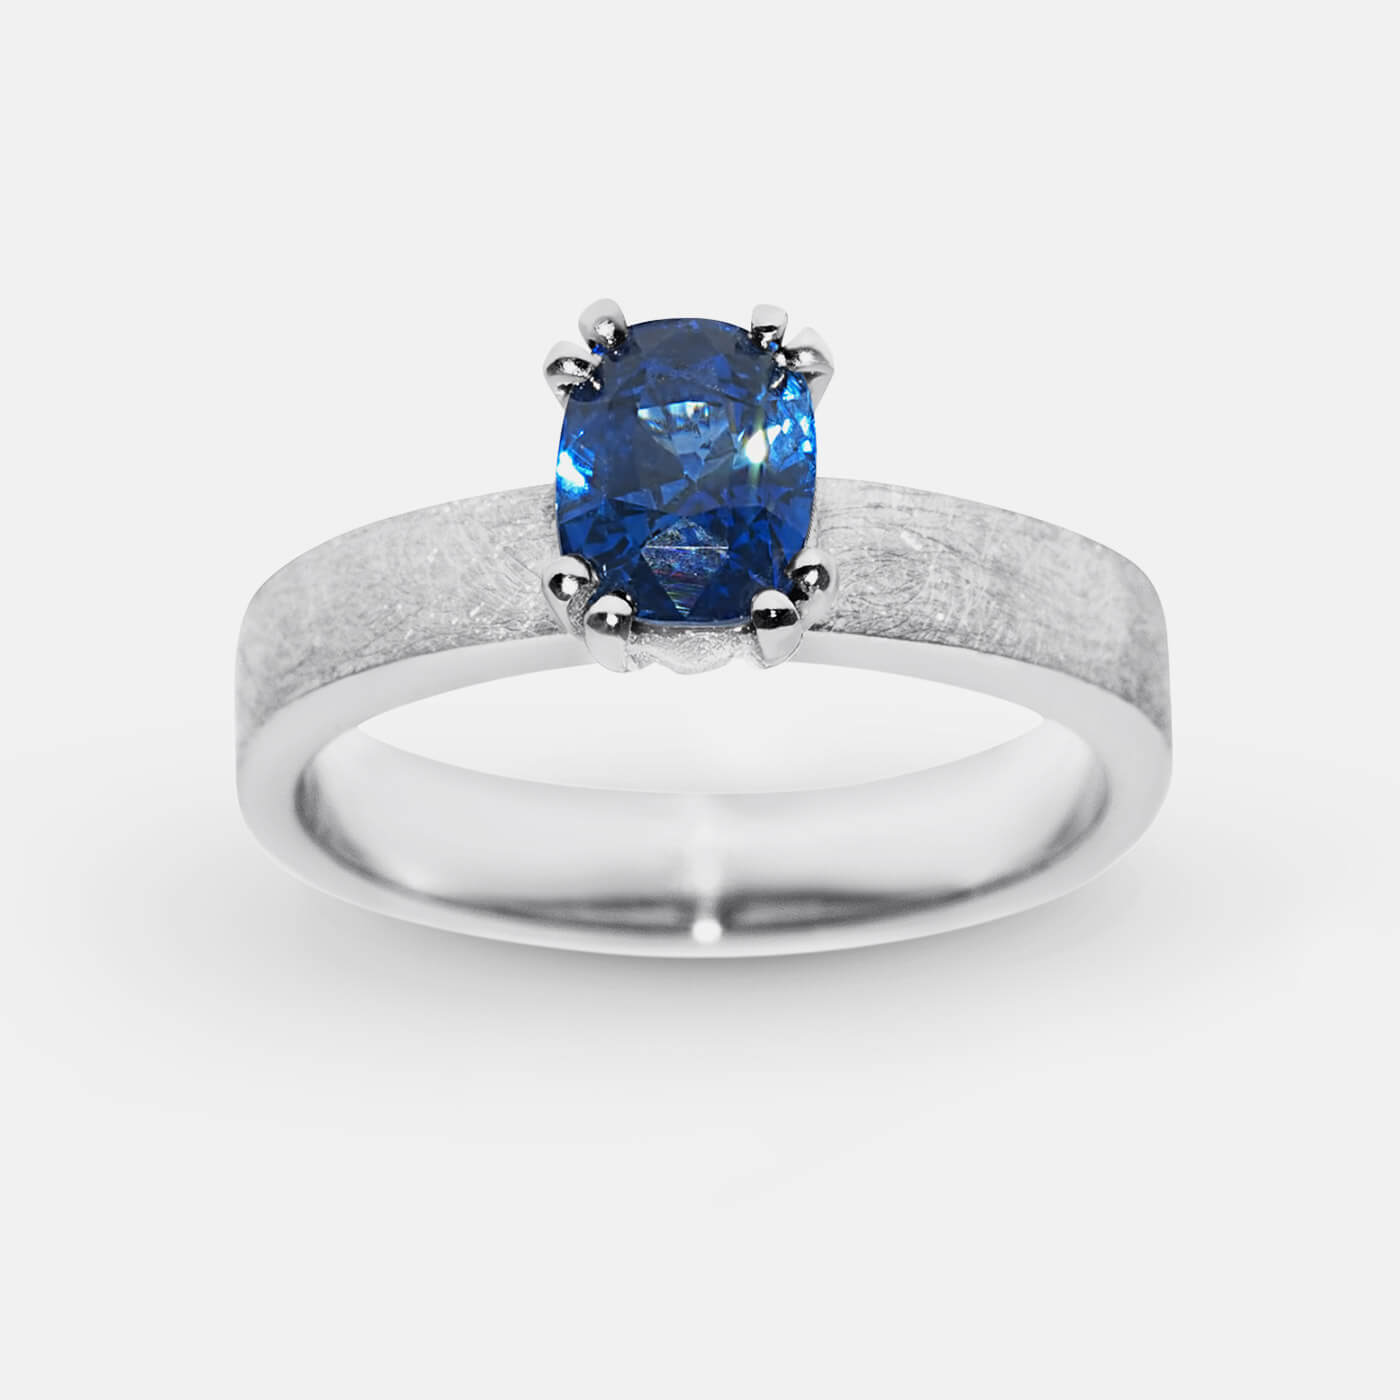 Ceylon Sapphire Solitaire Engagement Ring